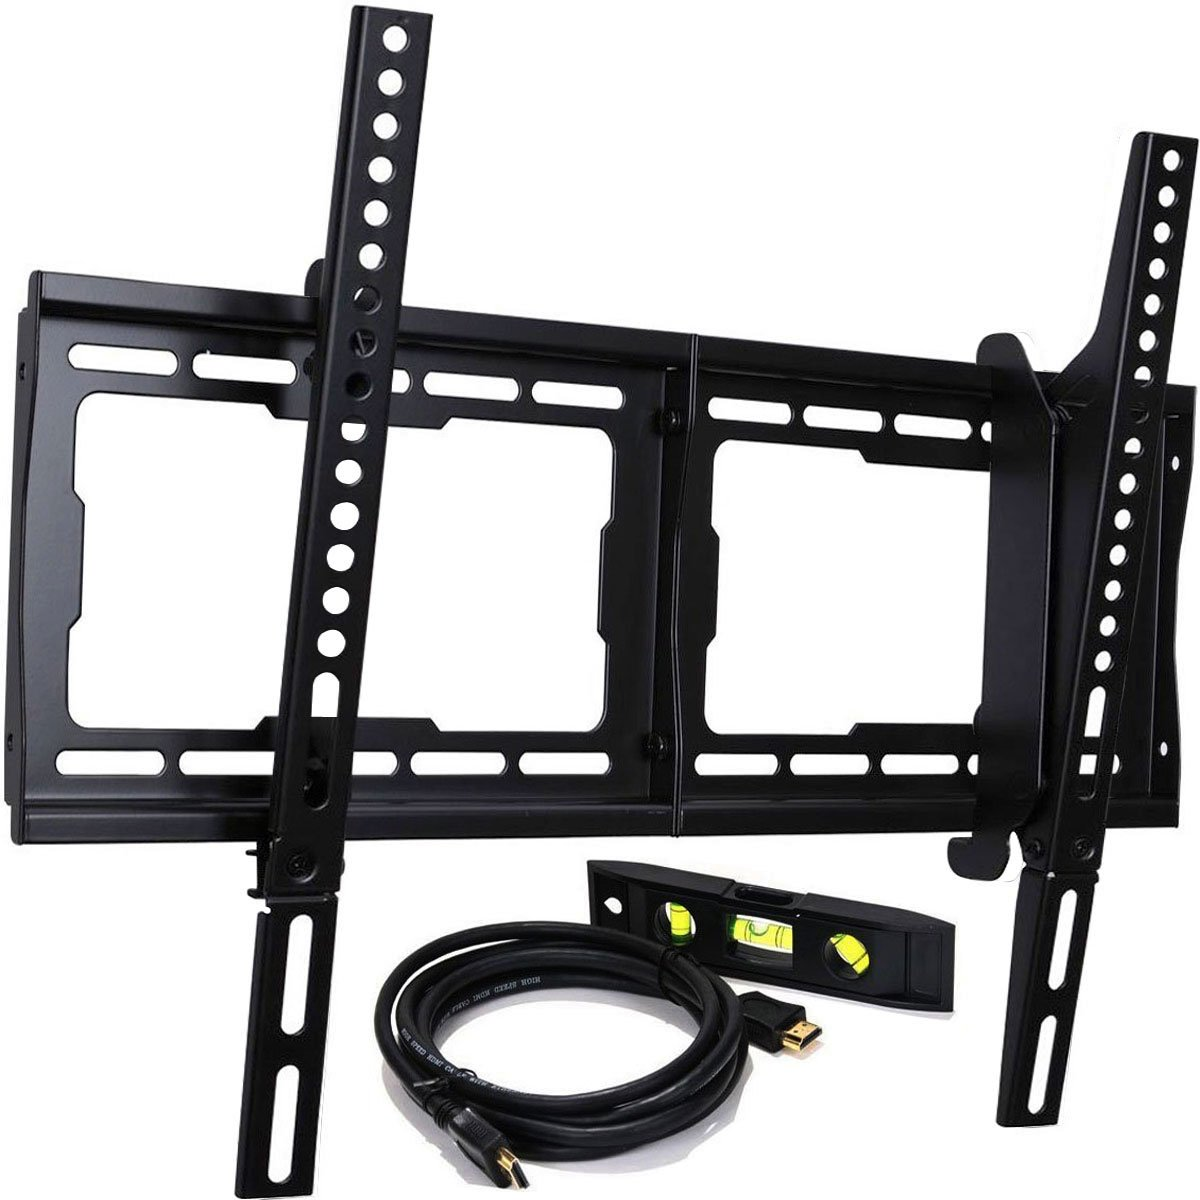 TV Ceilings & Wall Mounts